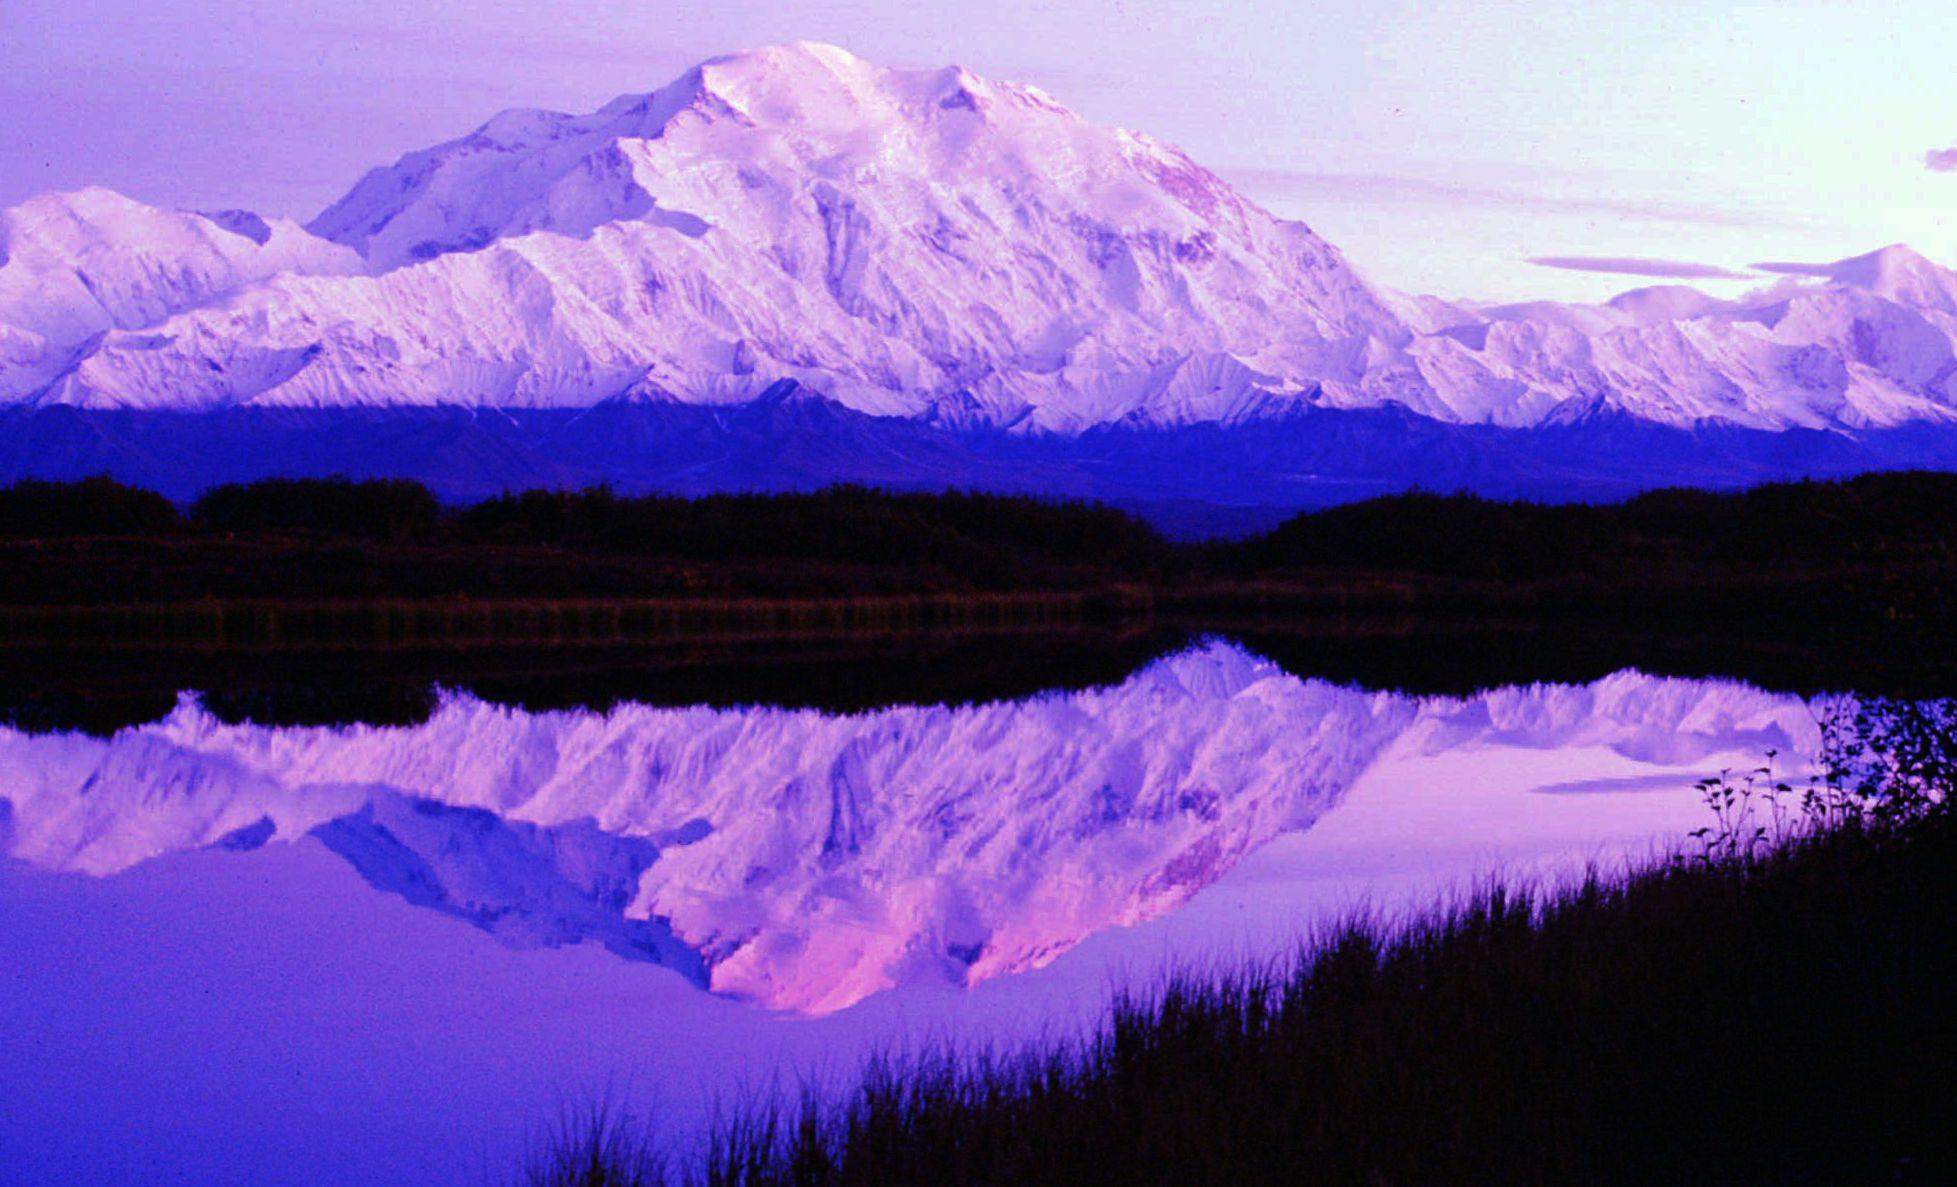 Denali National Park Videos at ABC News Video Archive at abcnews